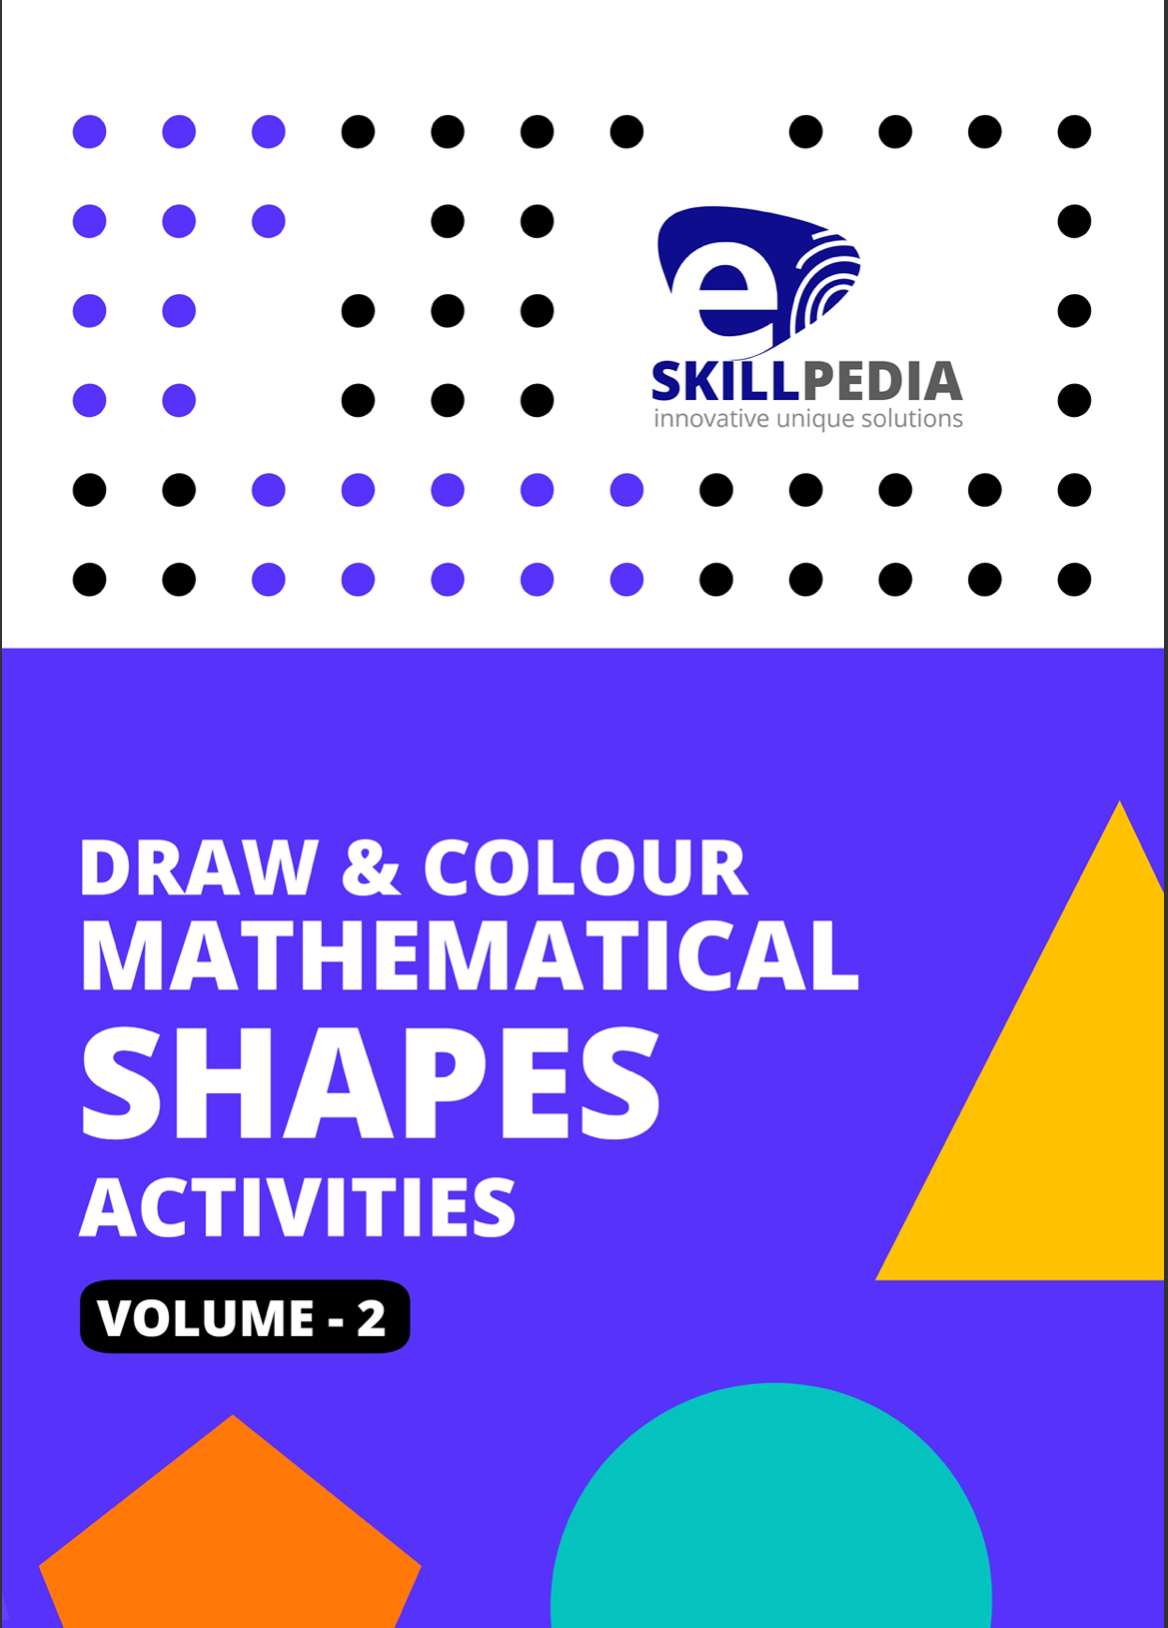 Draw & Colour Mathematical Shapes Activities (Volume 2)